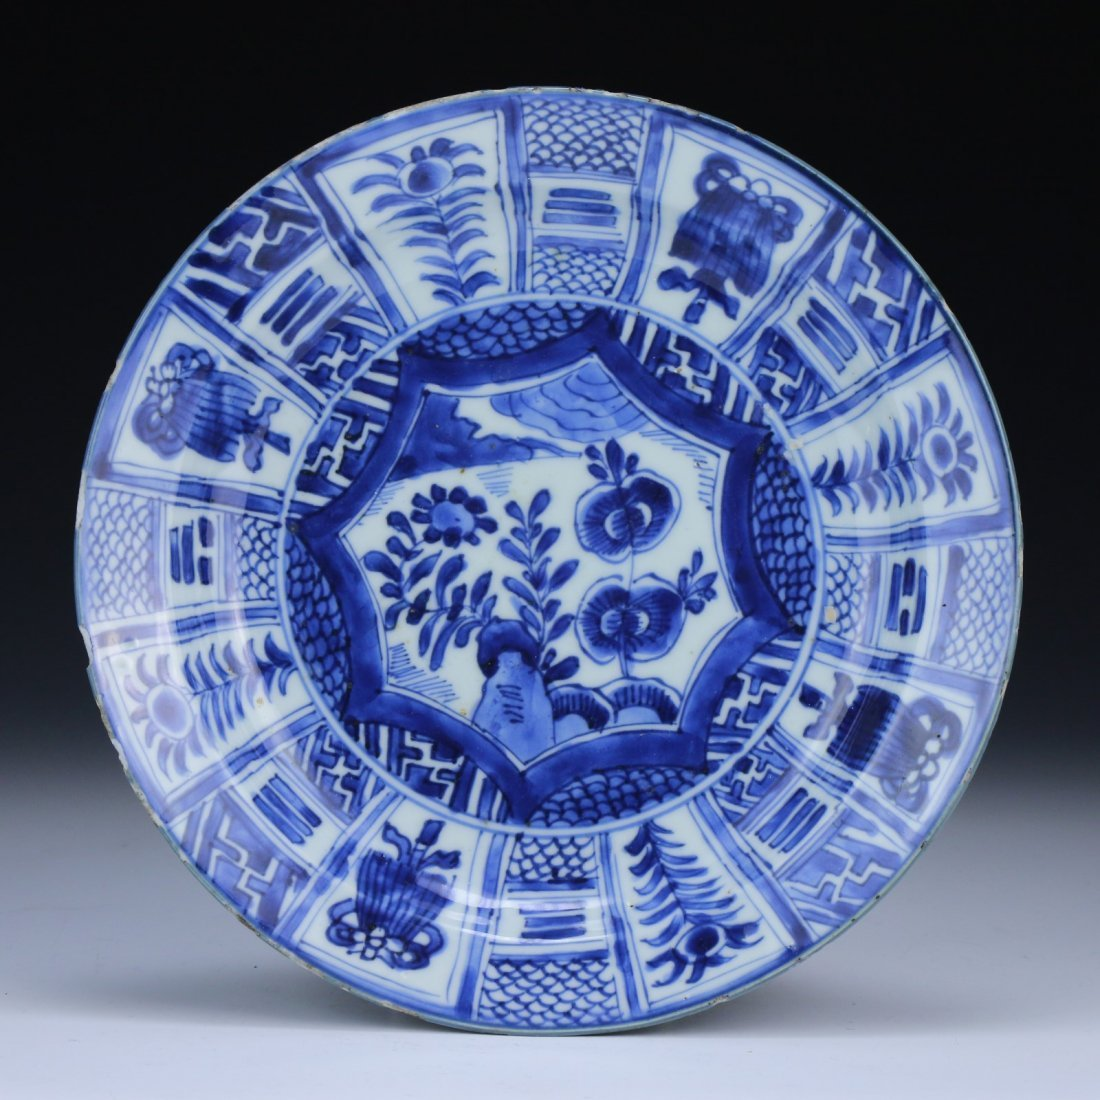 A Chinese Blue And White 'Kraak Porselein' Dish